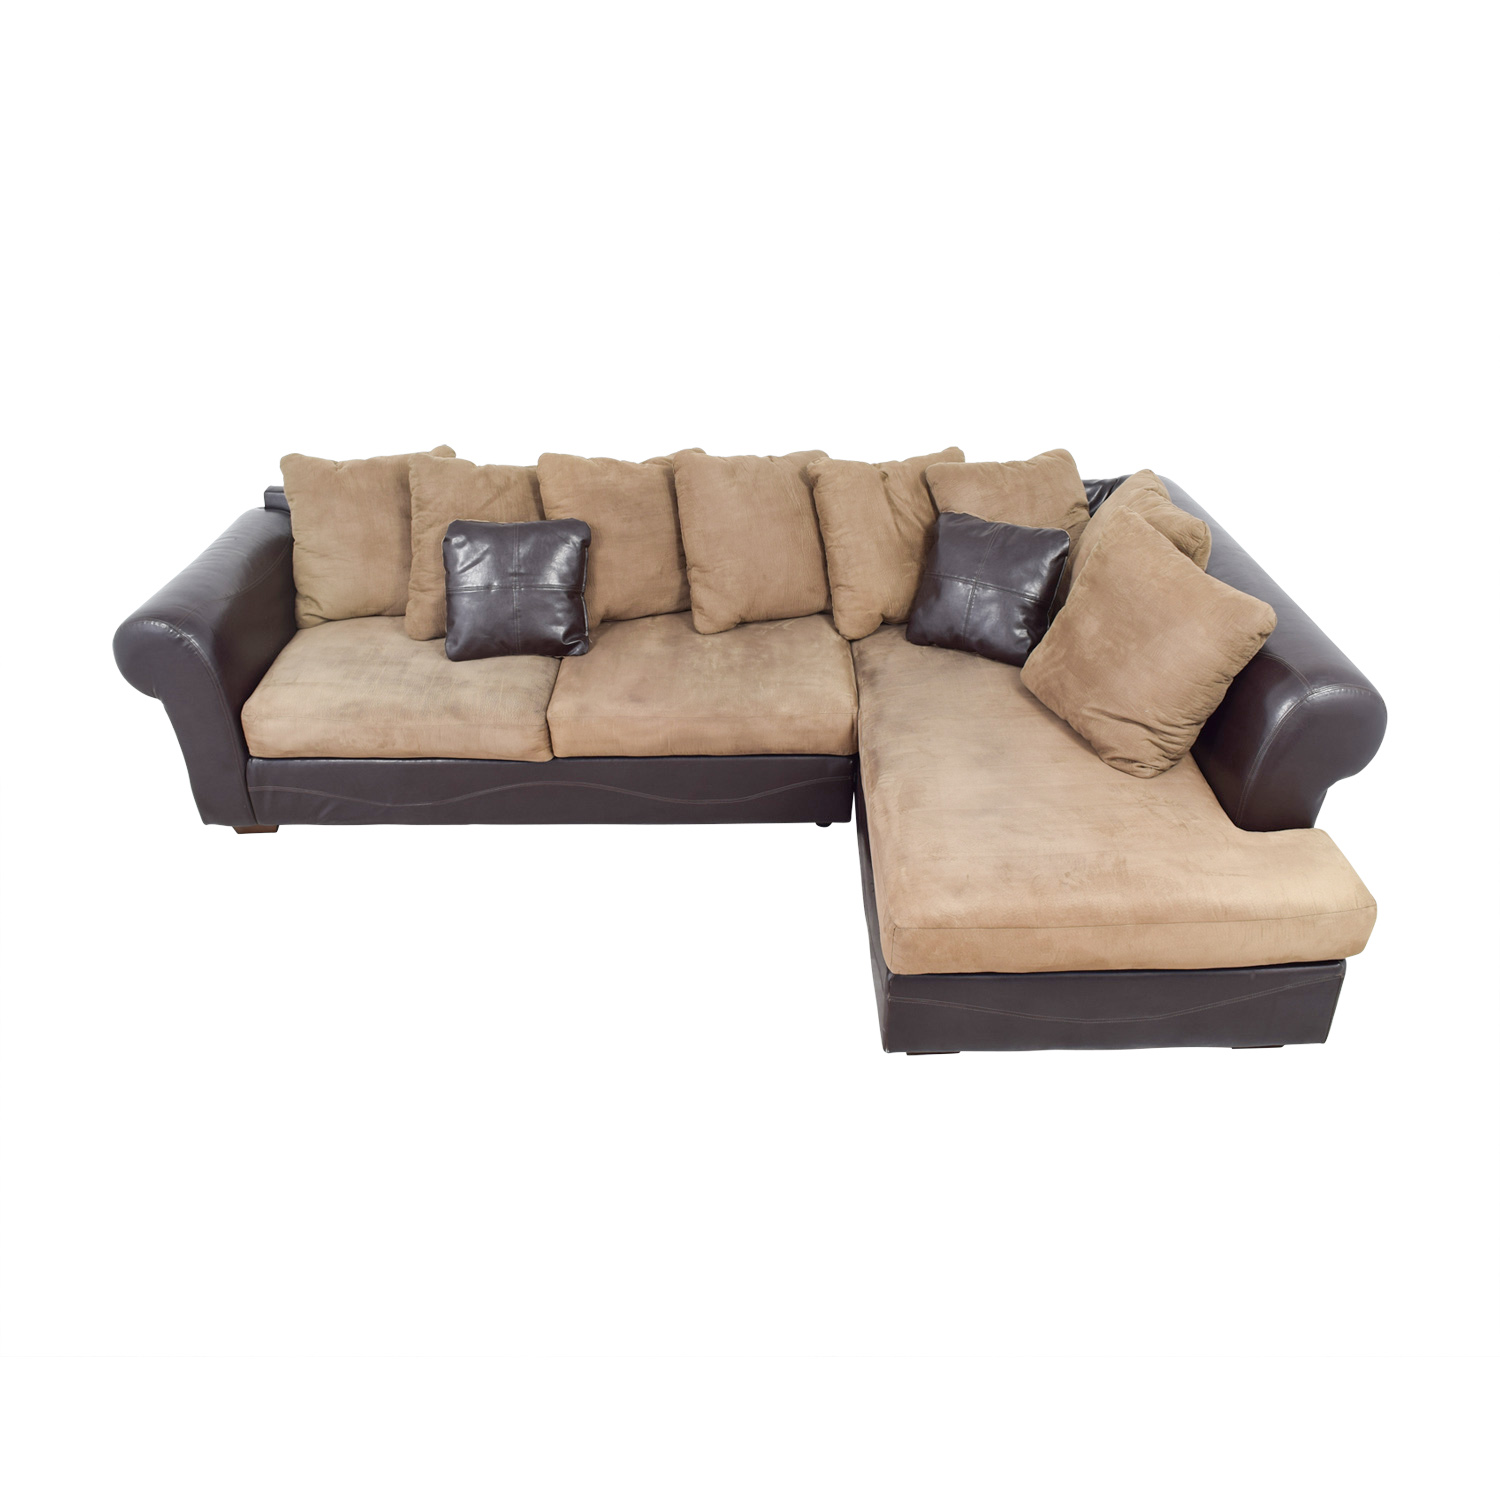 Ashley Furniture Ashley Furniture Brown Leather and Tan Microfiber Chaise Sectional on sale